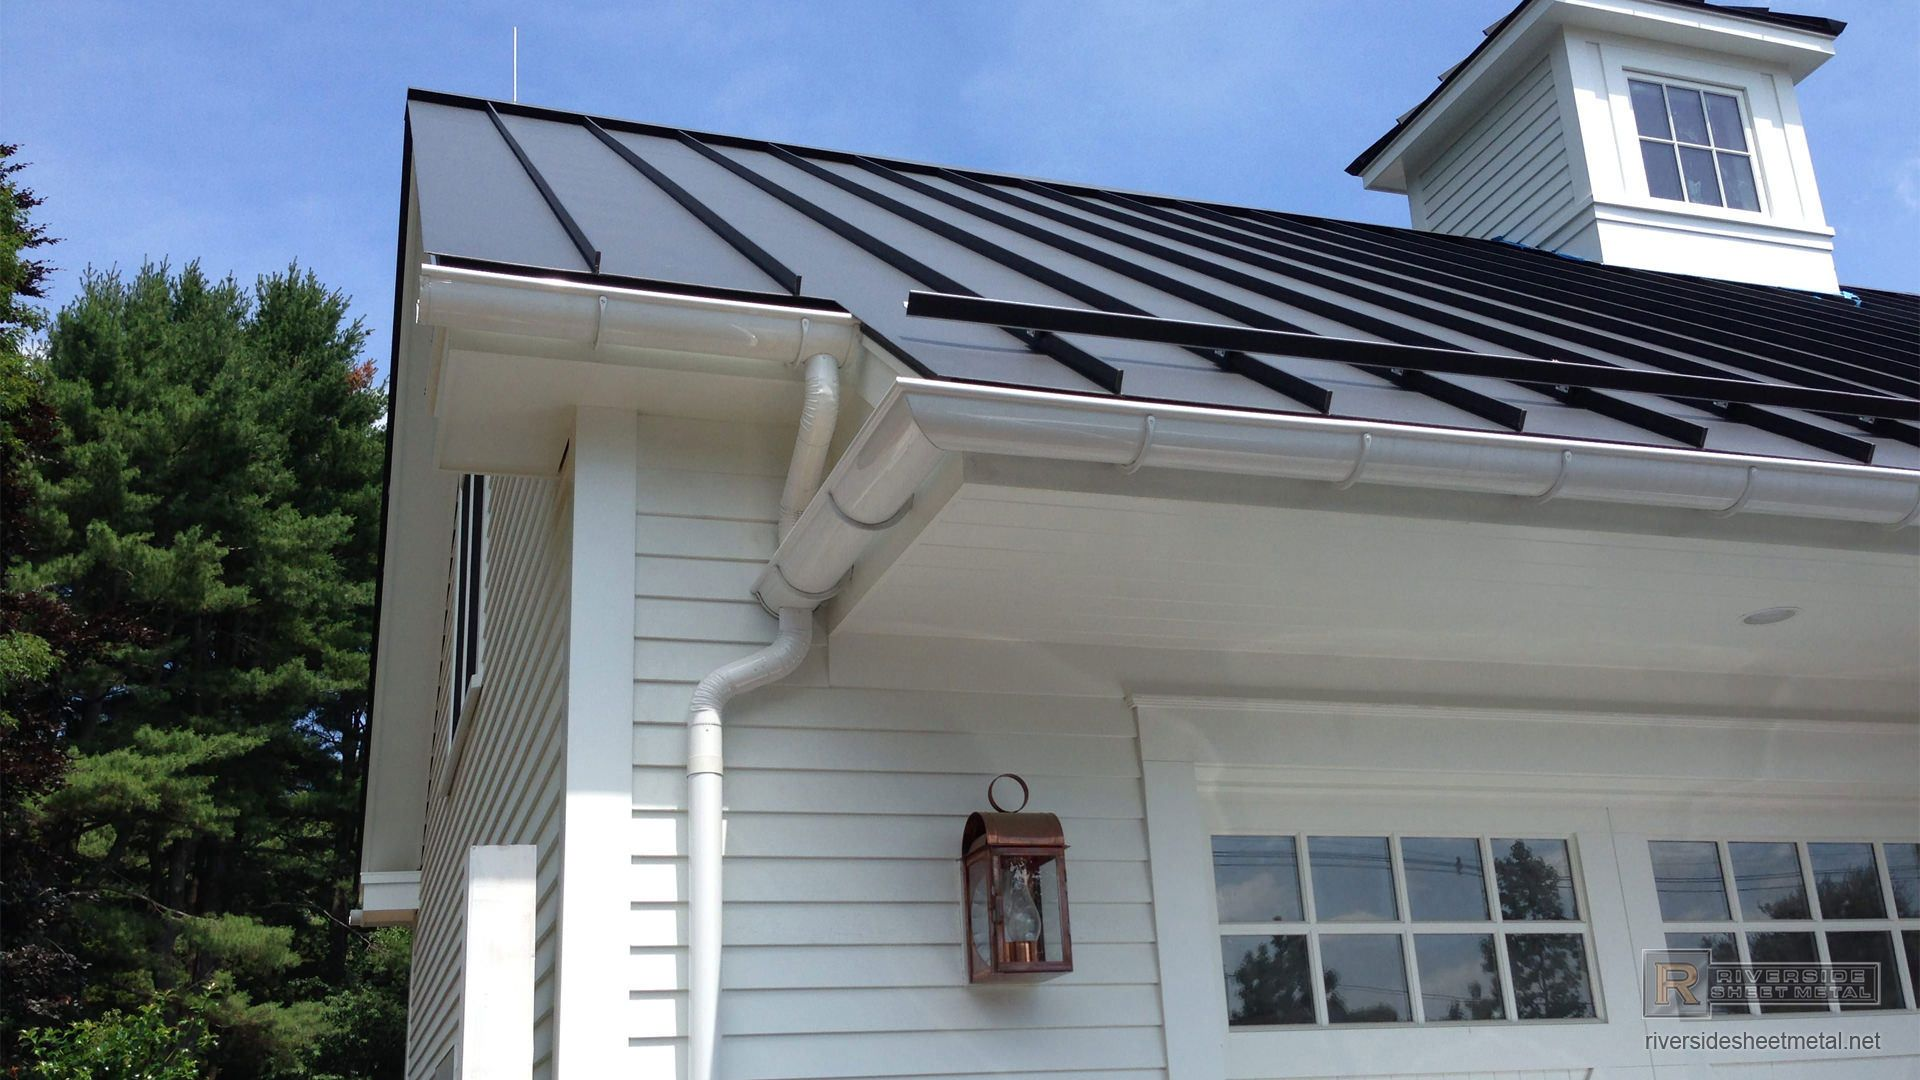 Pin By Robyn Ostryniec On This Old House Aluminum Roof Flat Roof Membrane Metal Roof